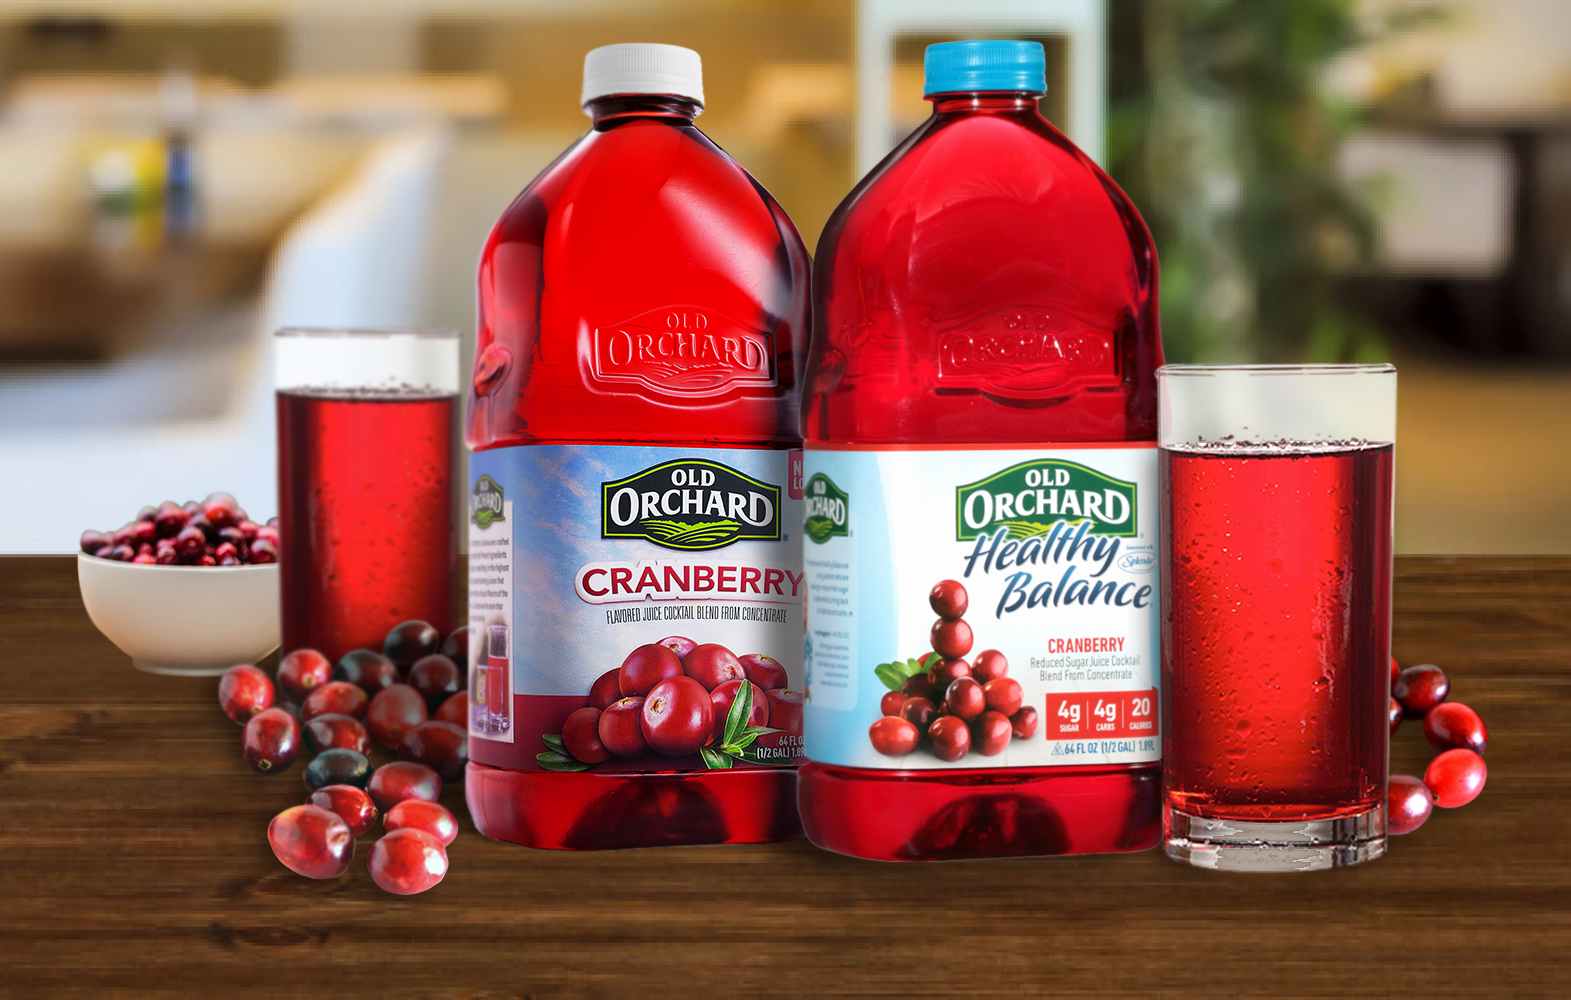 Old Orchard Cranberry Juice variants